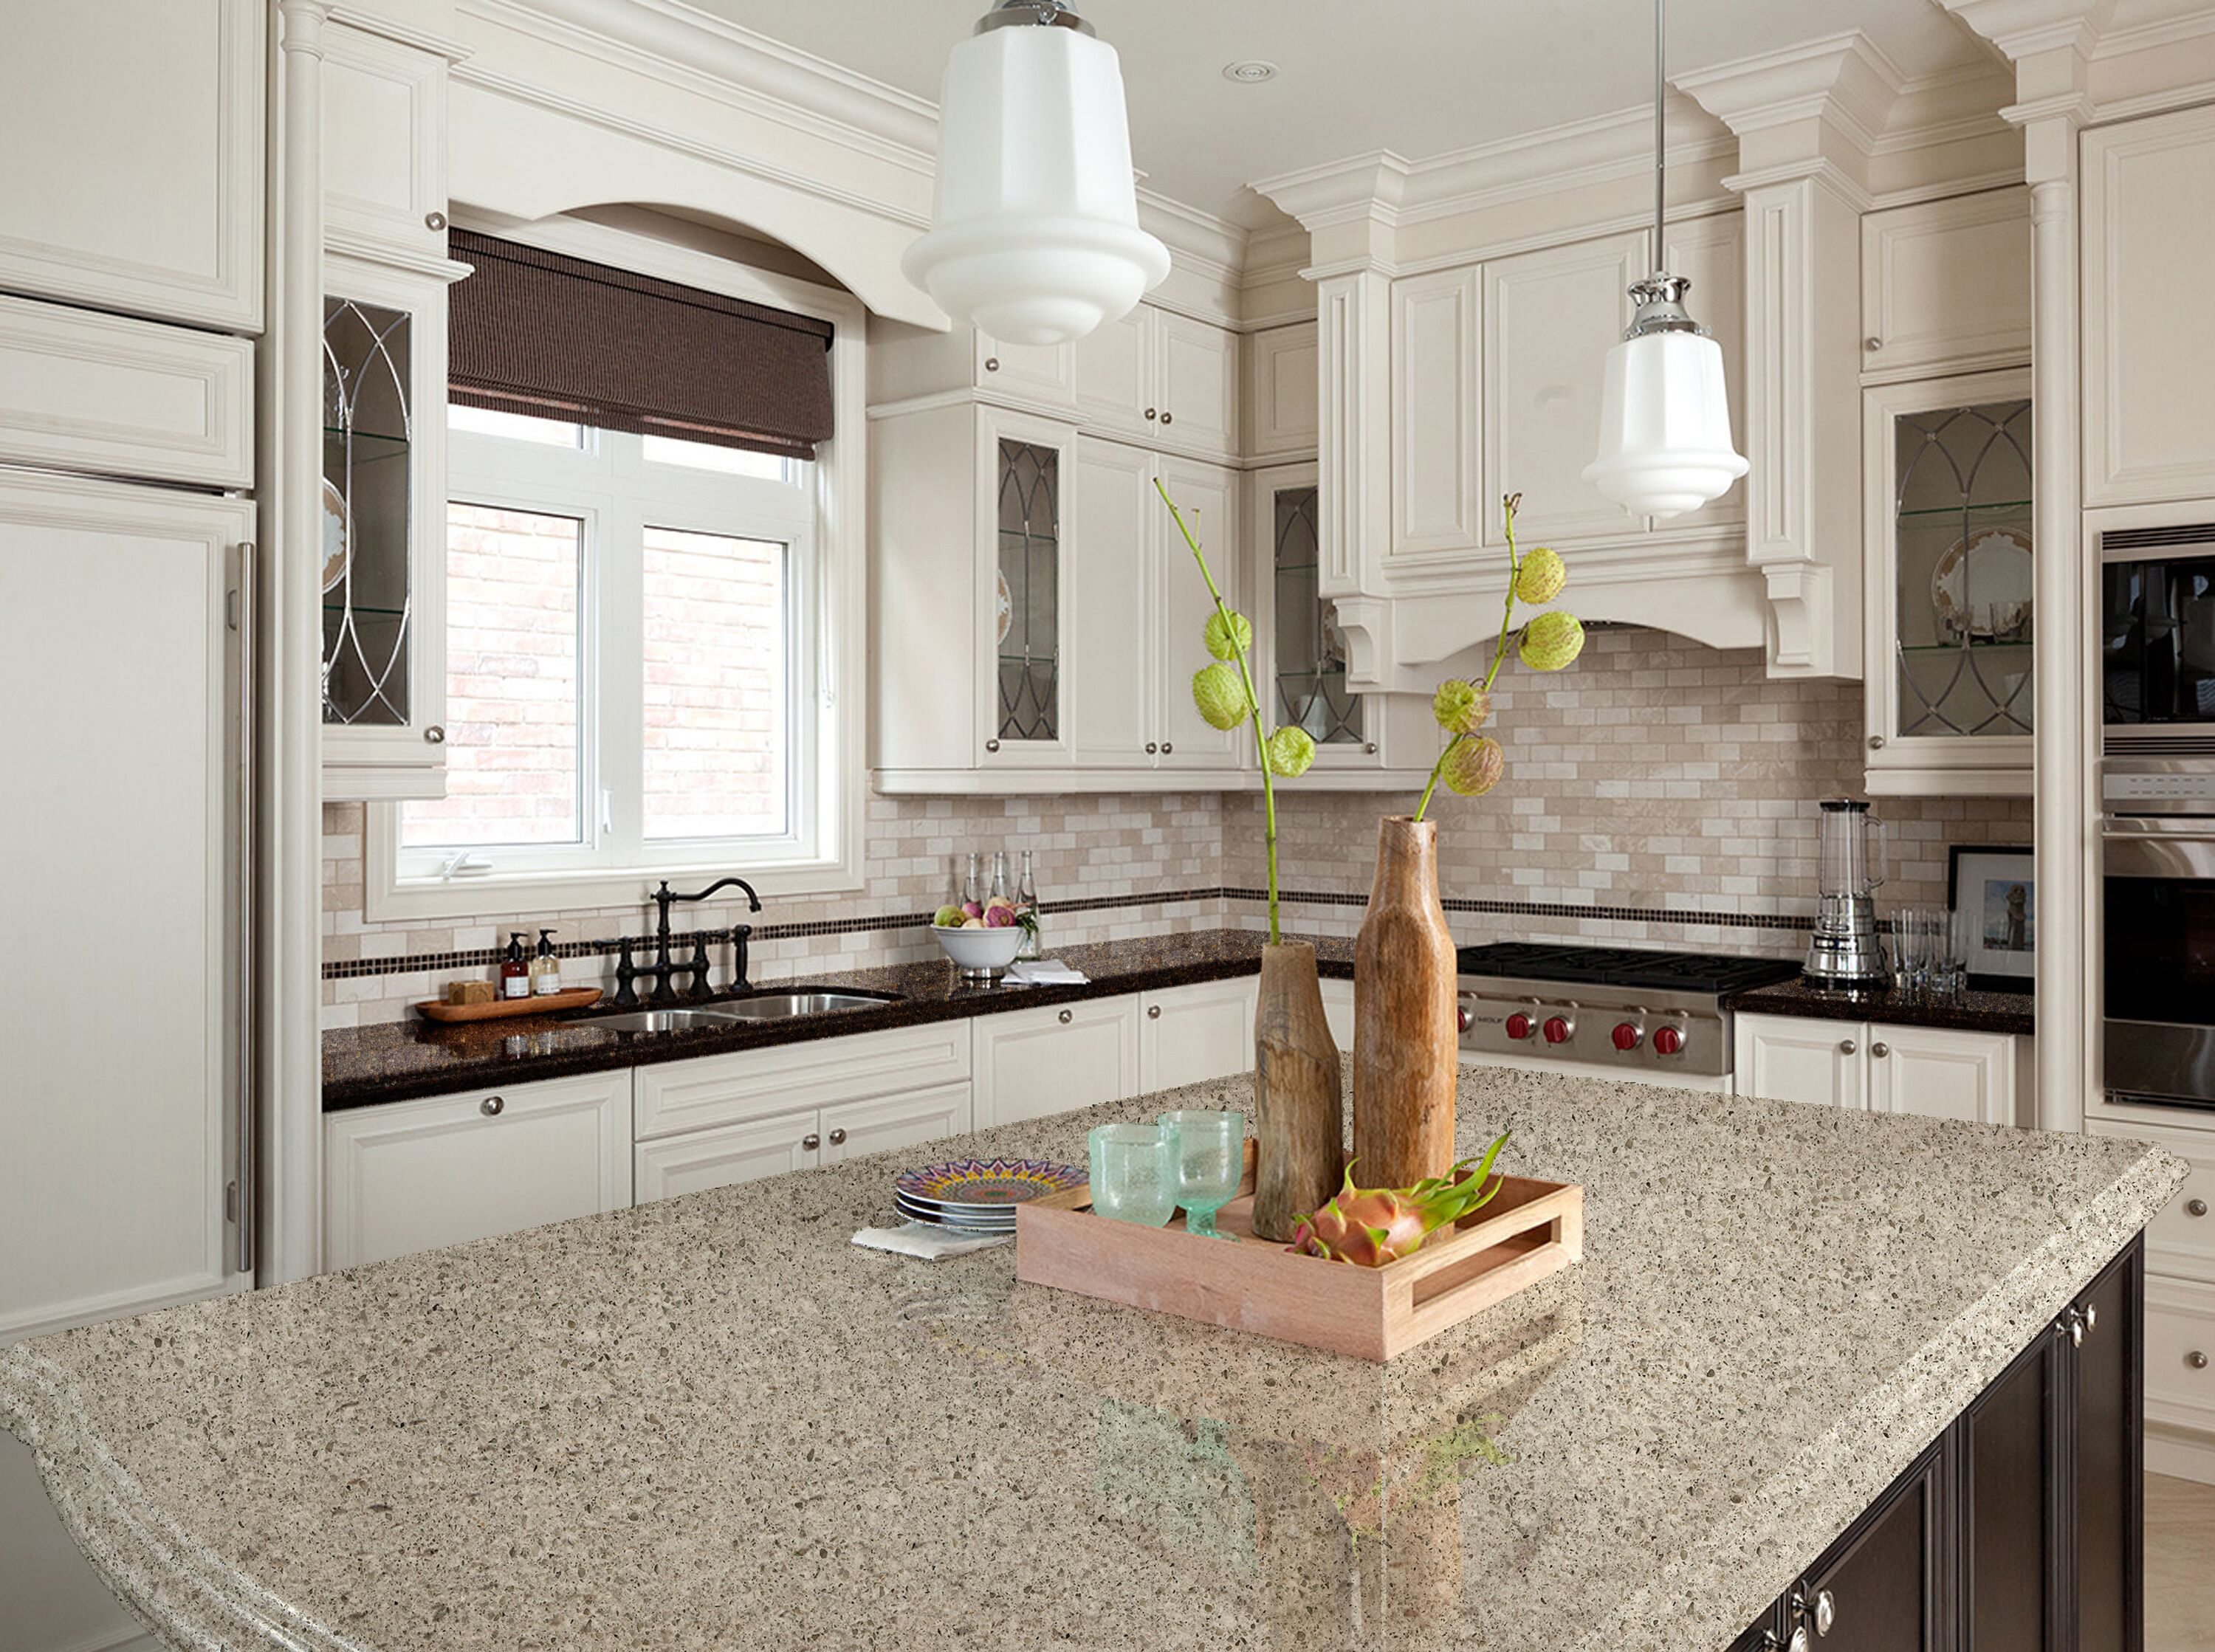 kingswood blog use why countertop countertops quartz kitchen brigten designs this counters choose images up img